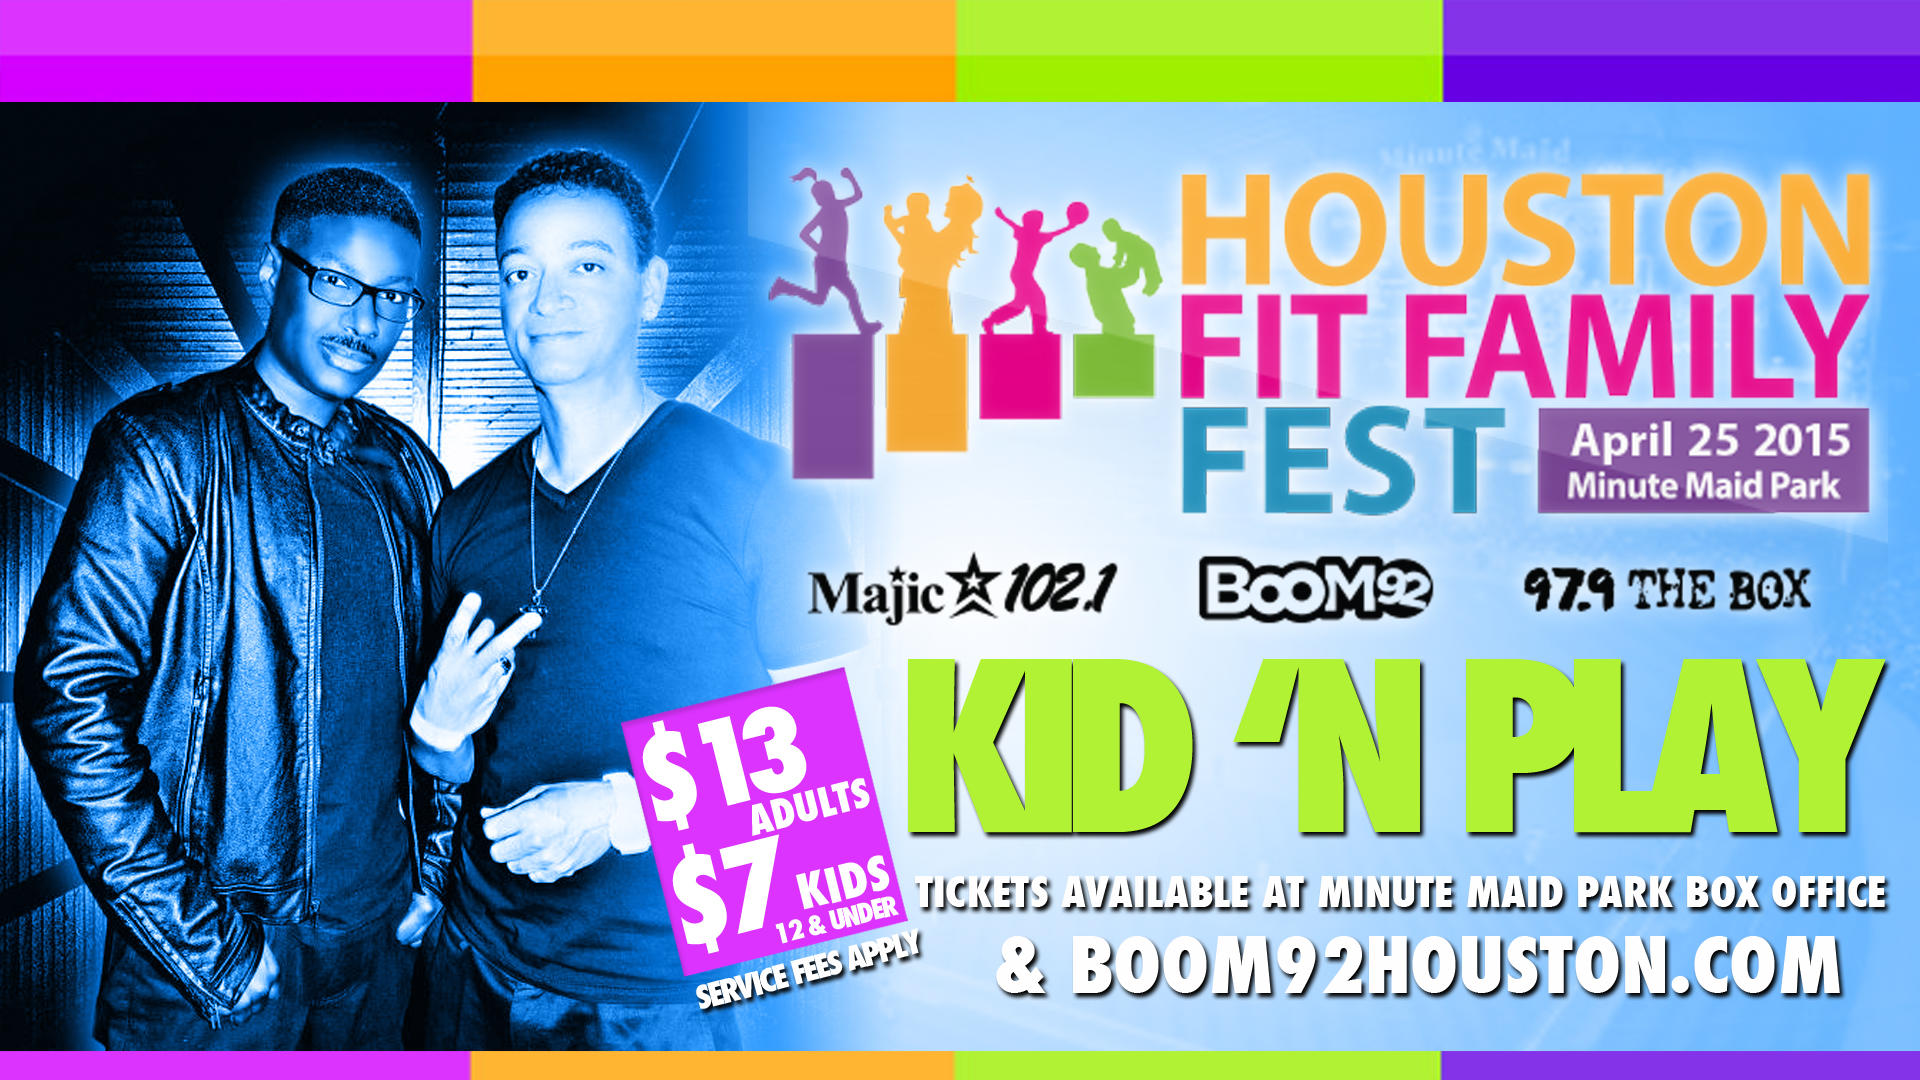 Houston Fit Family Fest Kid & Play